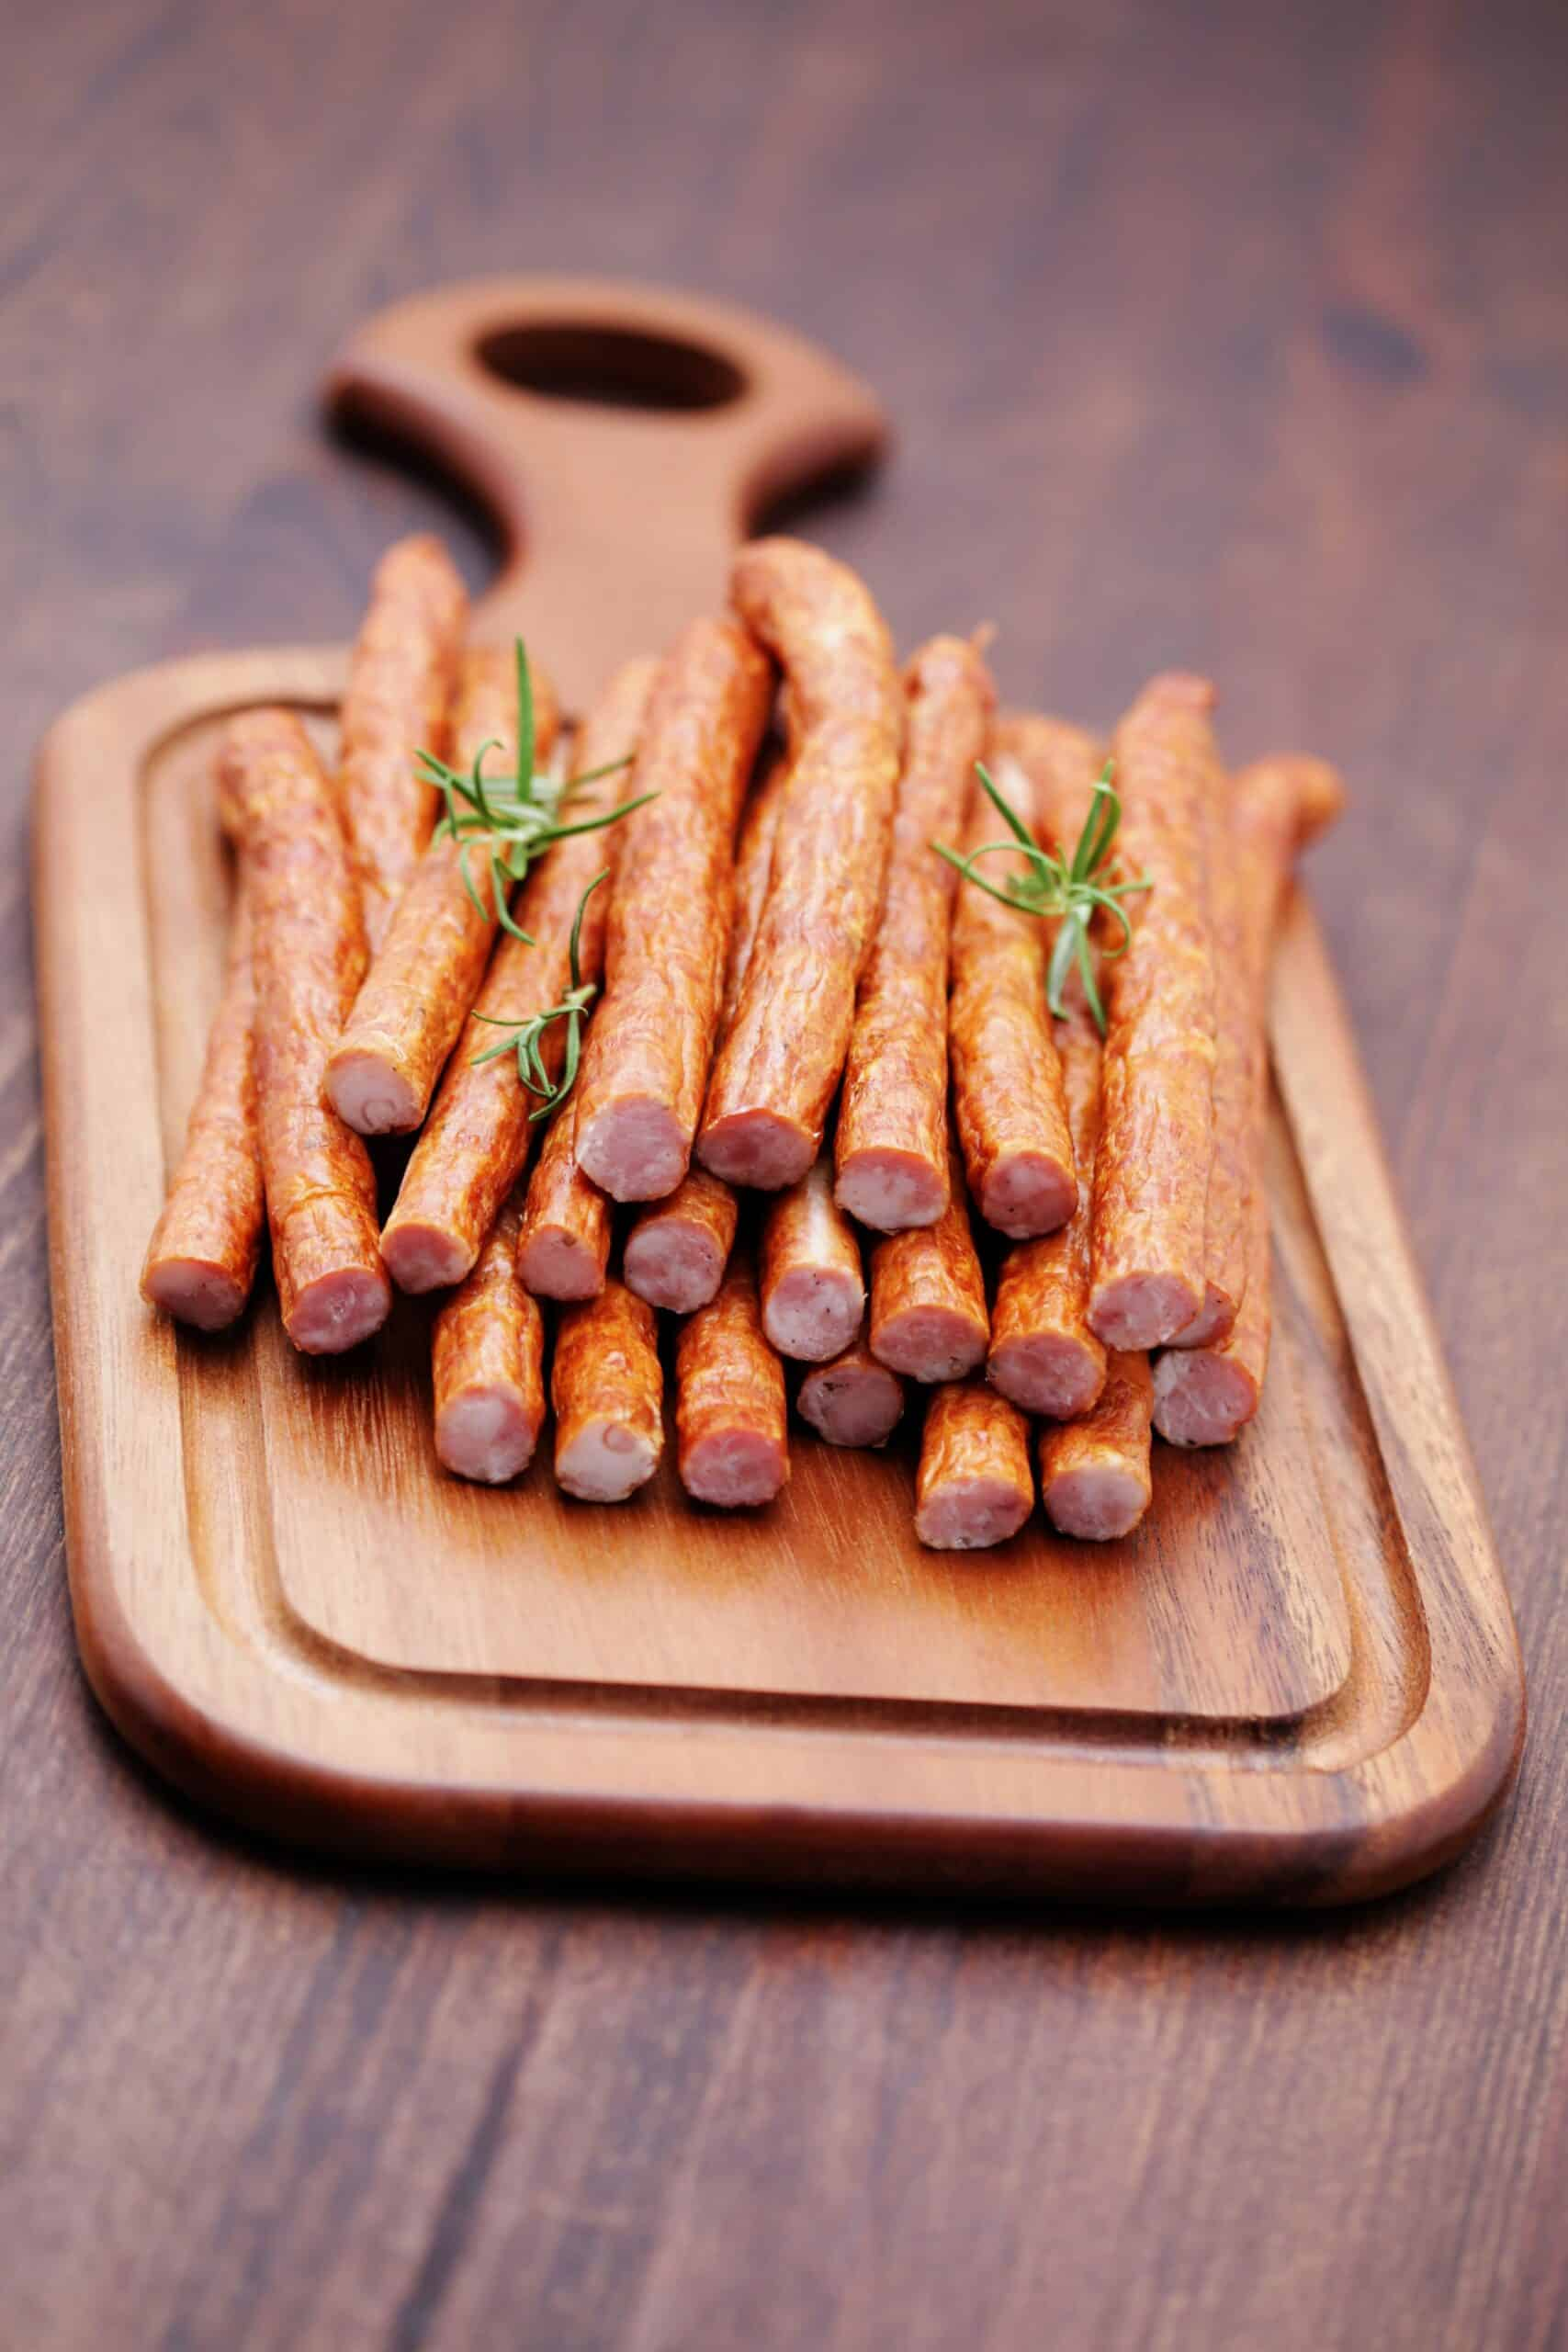 Make your own smoked beef sticks